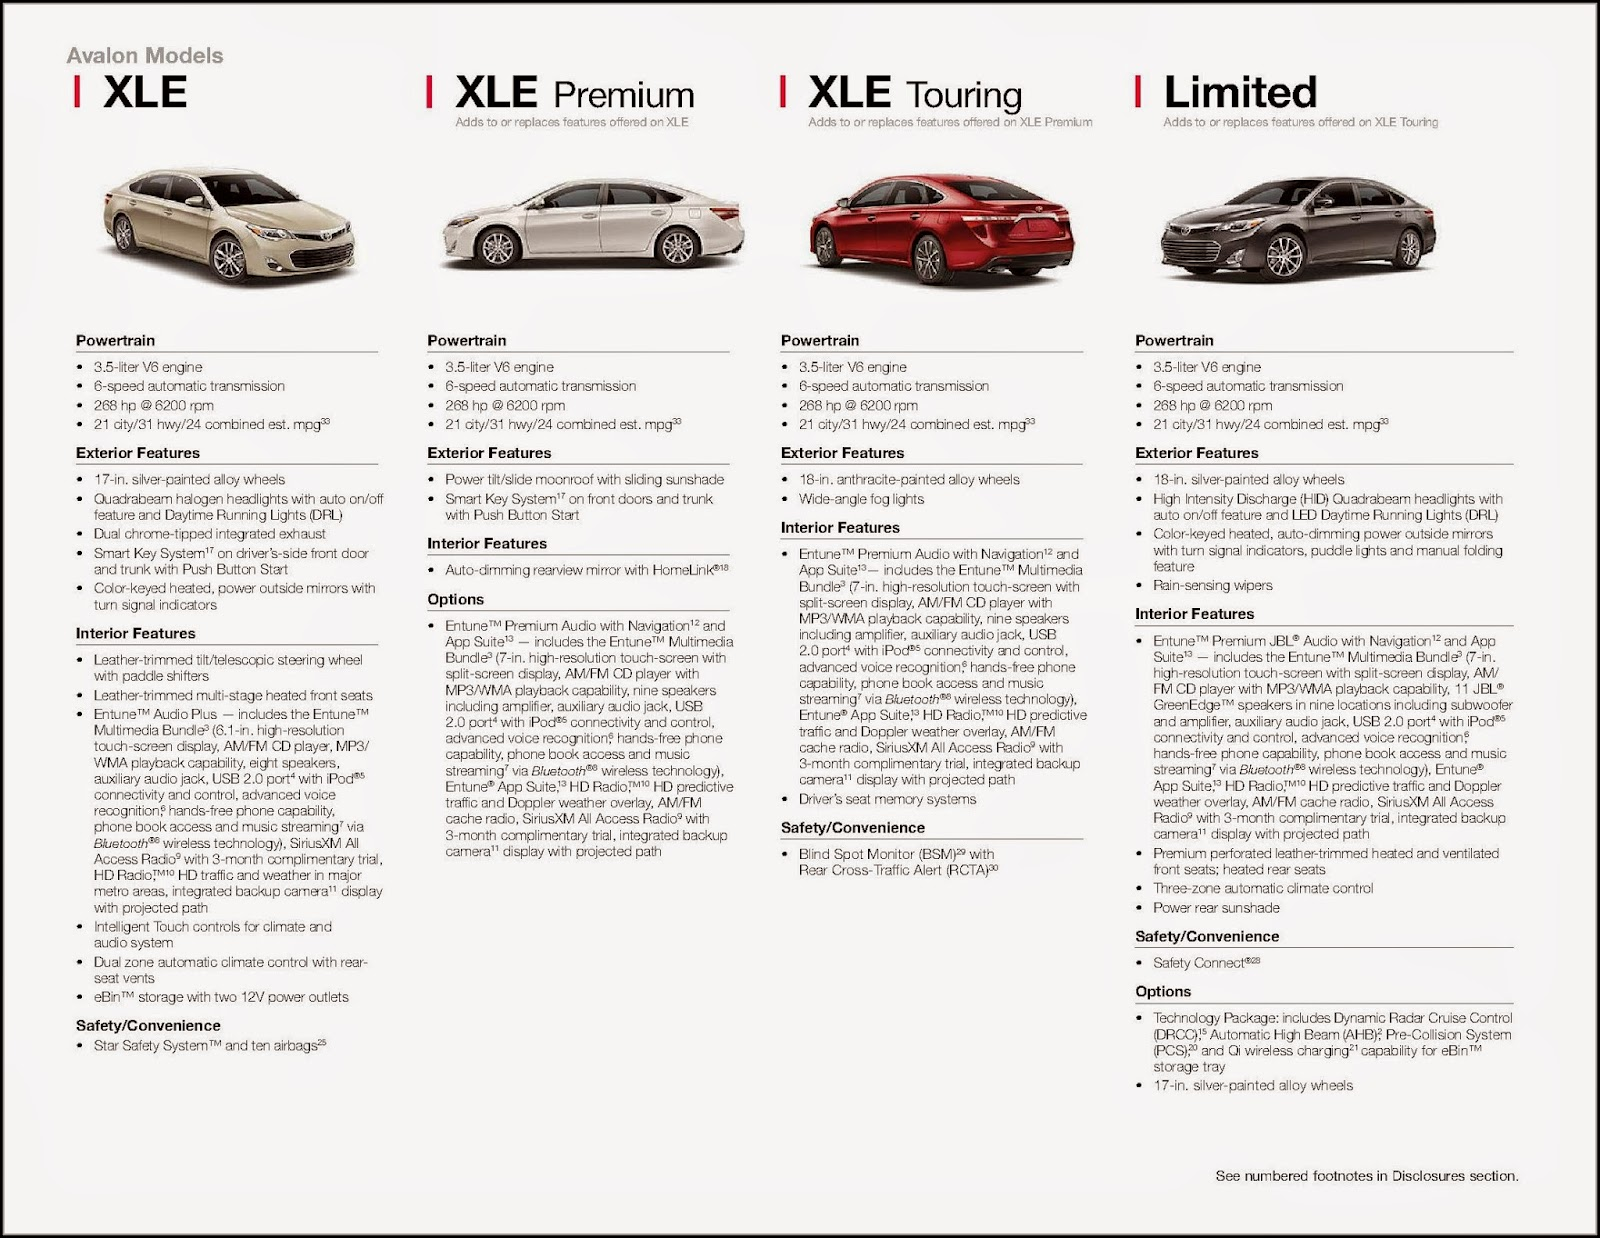 toyota avalon different models xle premium touring limited